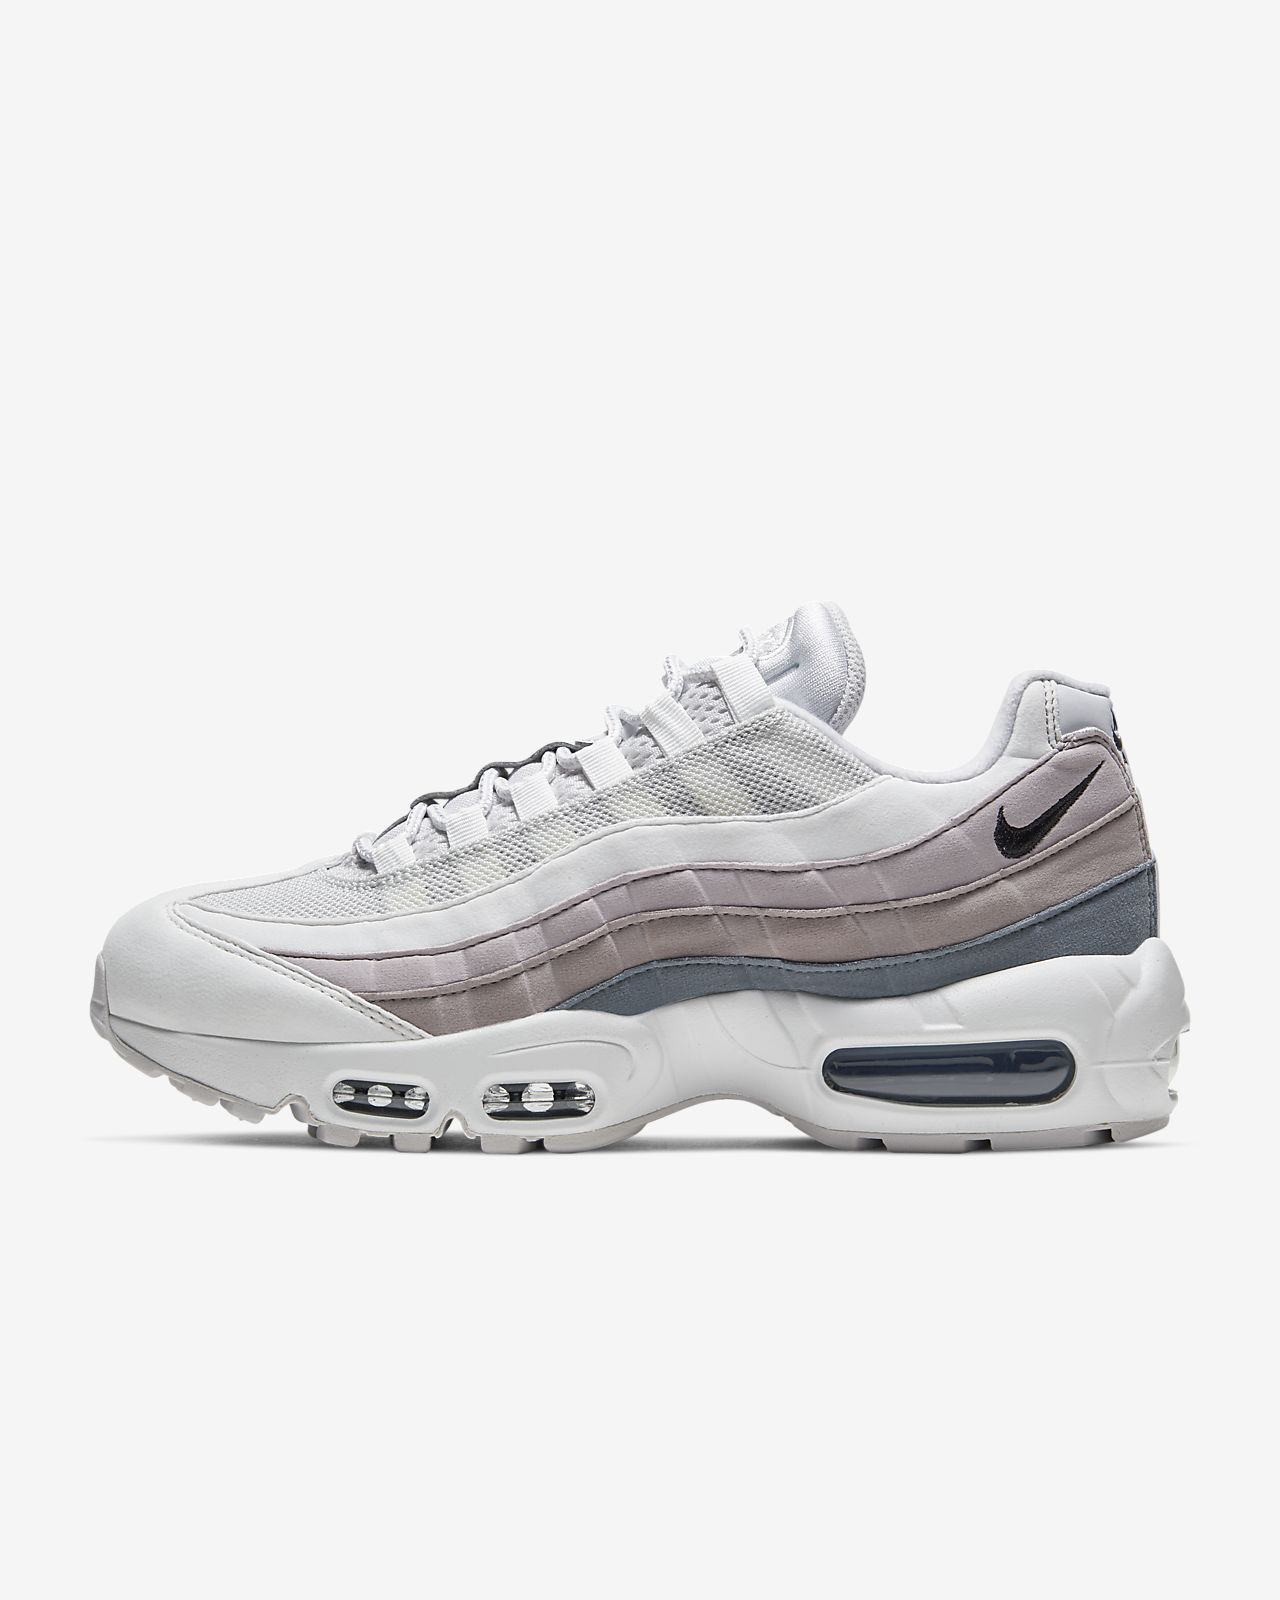 separation shoes 26281 f3e60 Women s Shoe. Nike Air Max 95